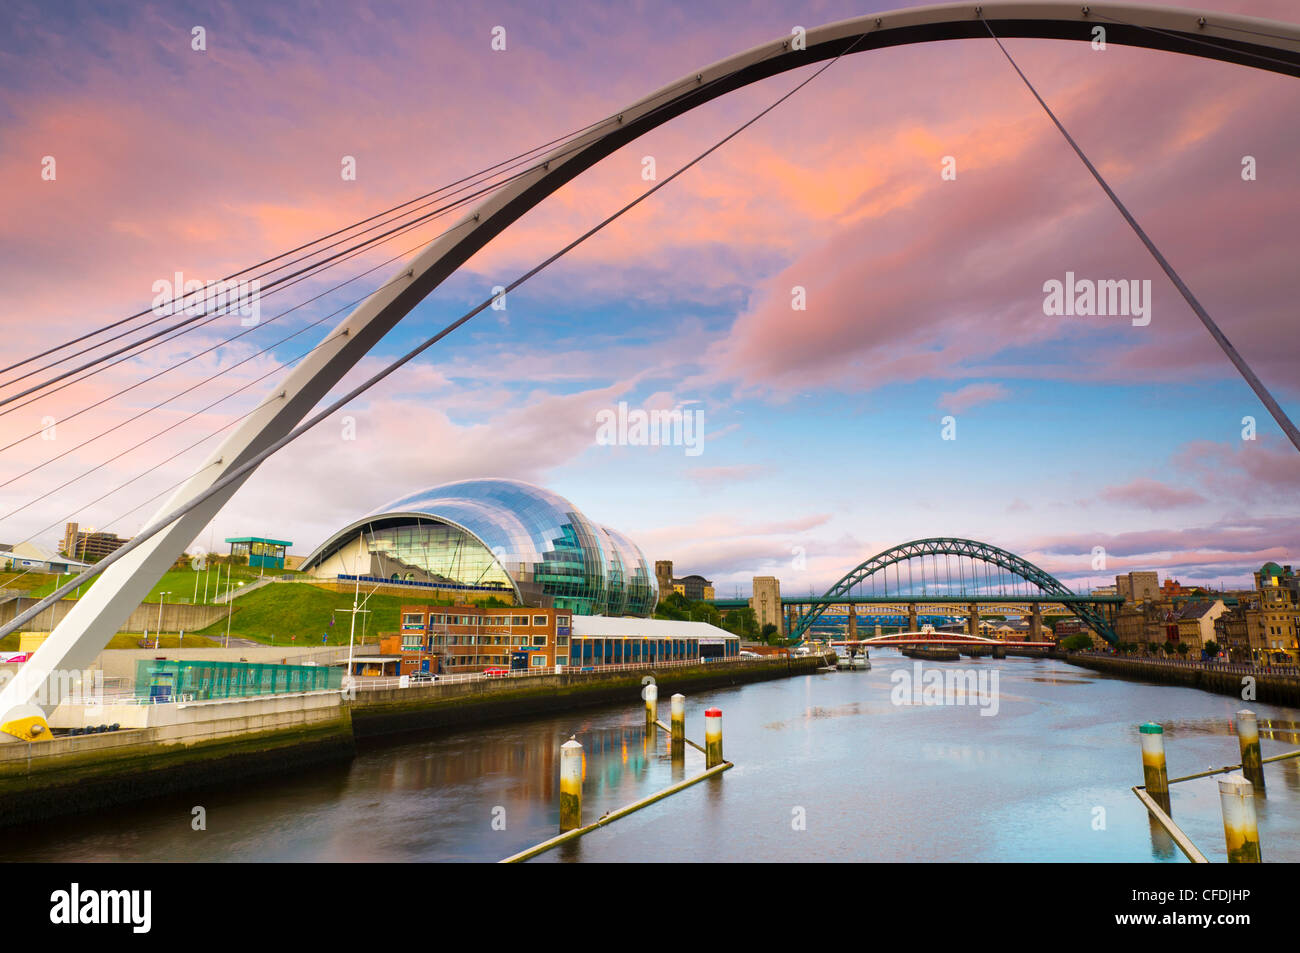 The Millennium Bridge and The Sage,the River Tyne, Tyne Bridge in background, Gateshead, Tyne and Wear, England, - Stock Image